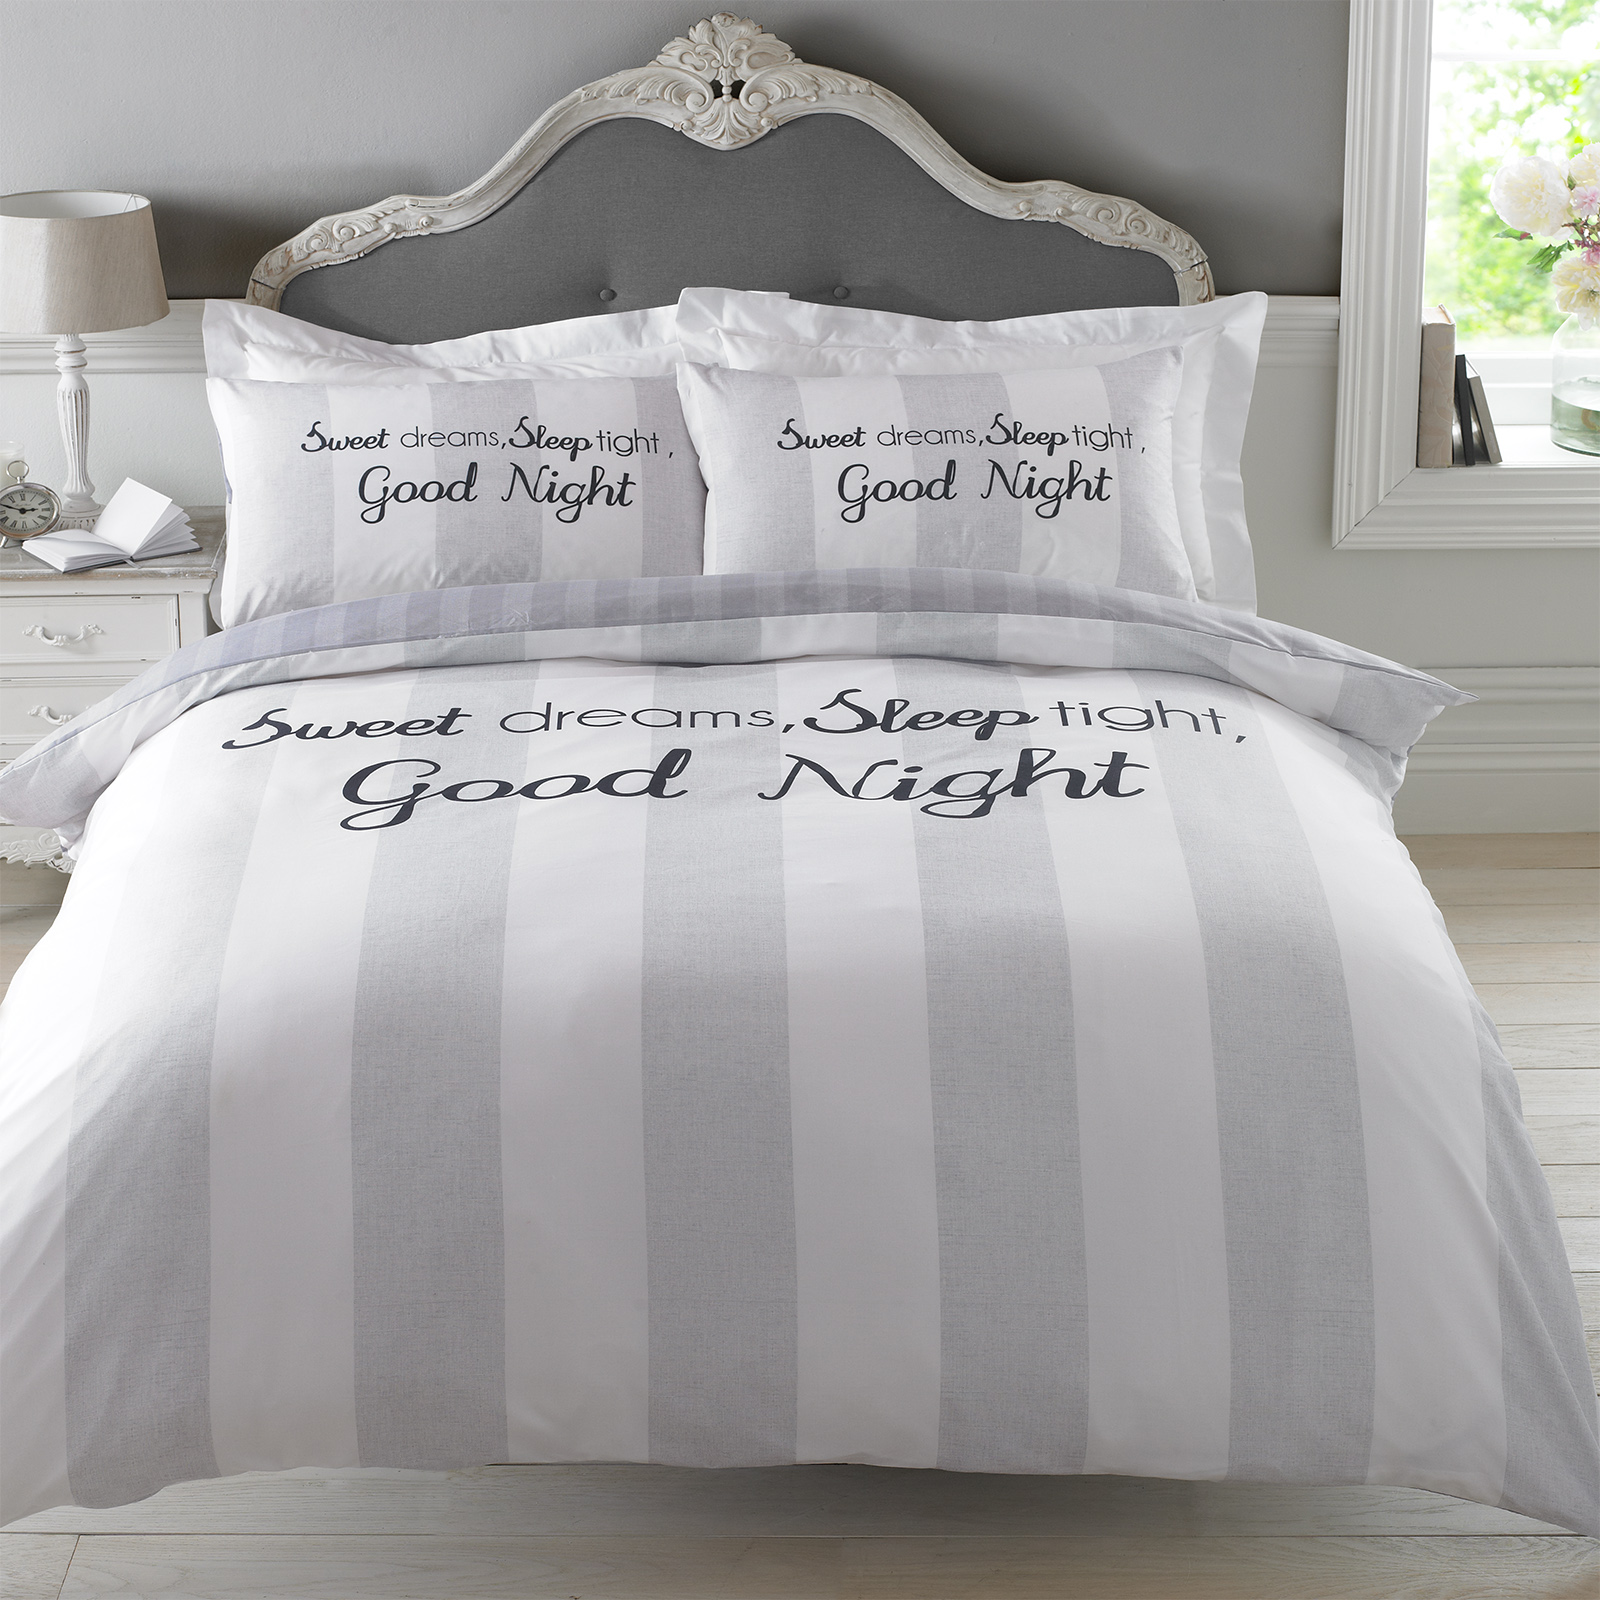 new duvet cover with pillowcase bedding set sweet dreams sleep  - newduvetcoverwithpillowcasebeddingsetsweet